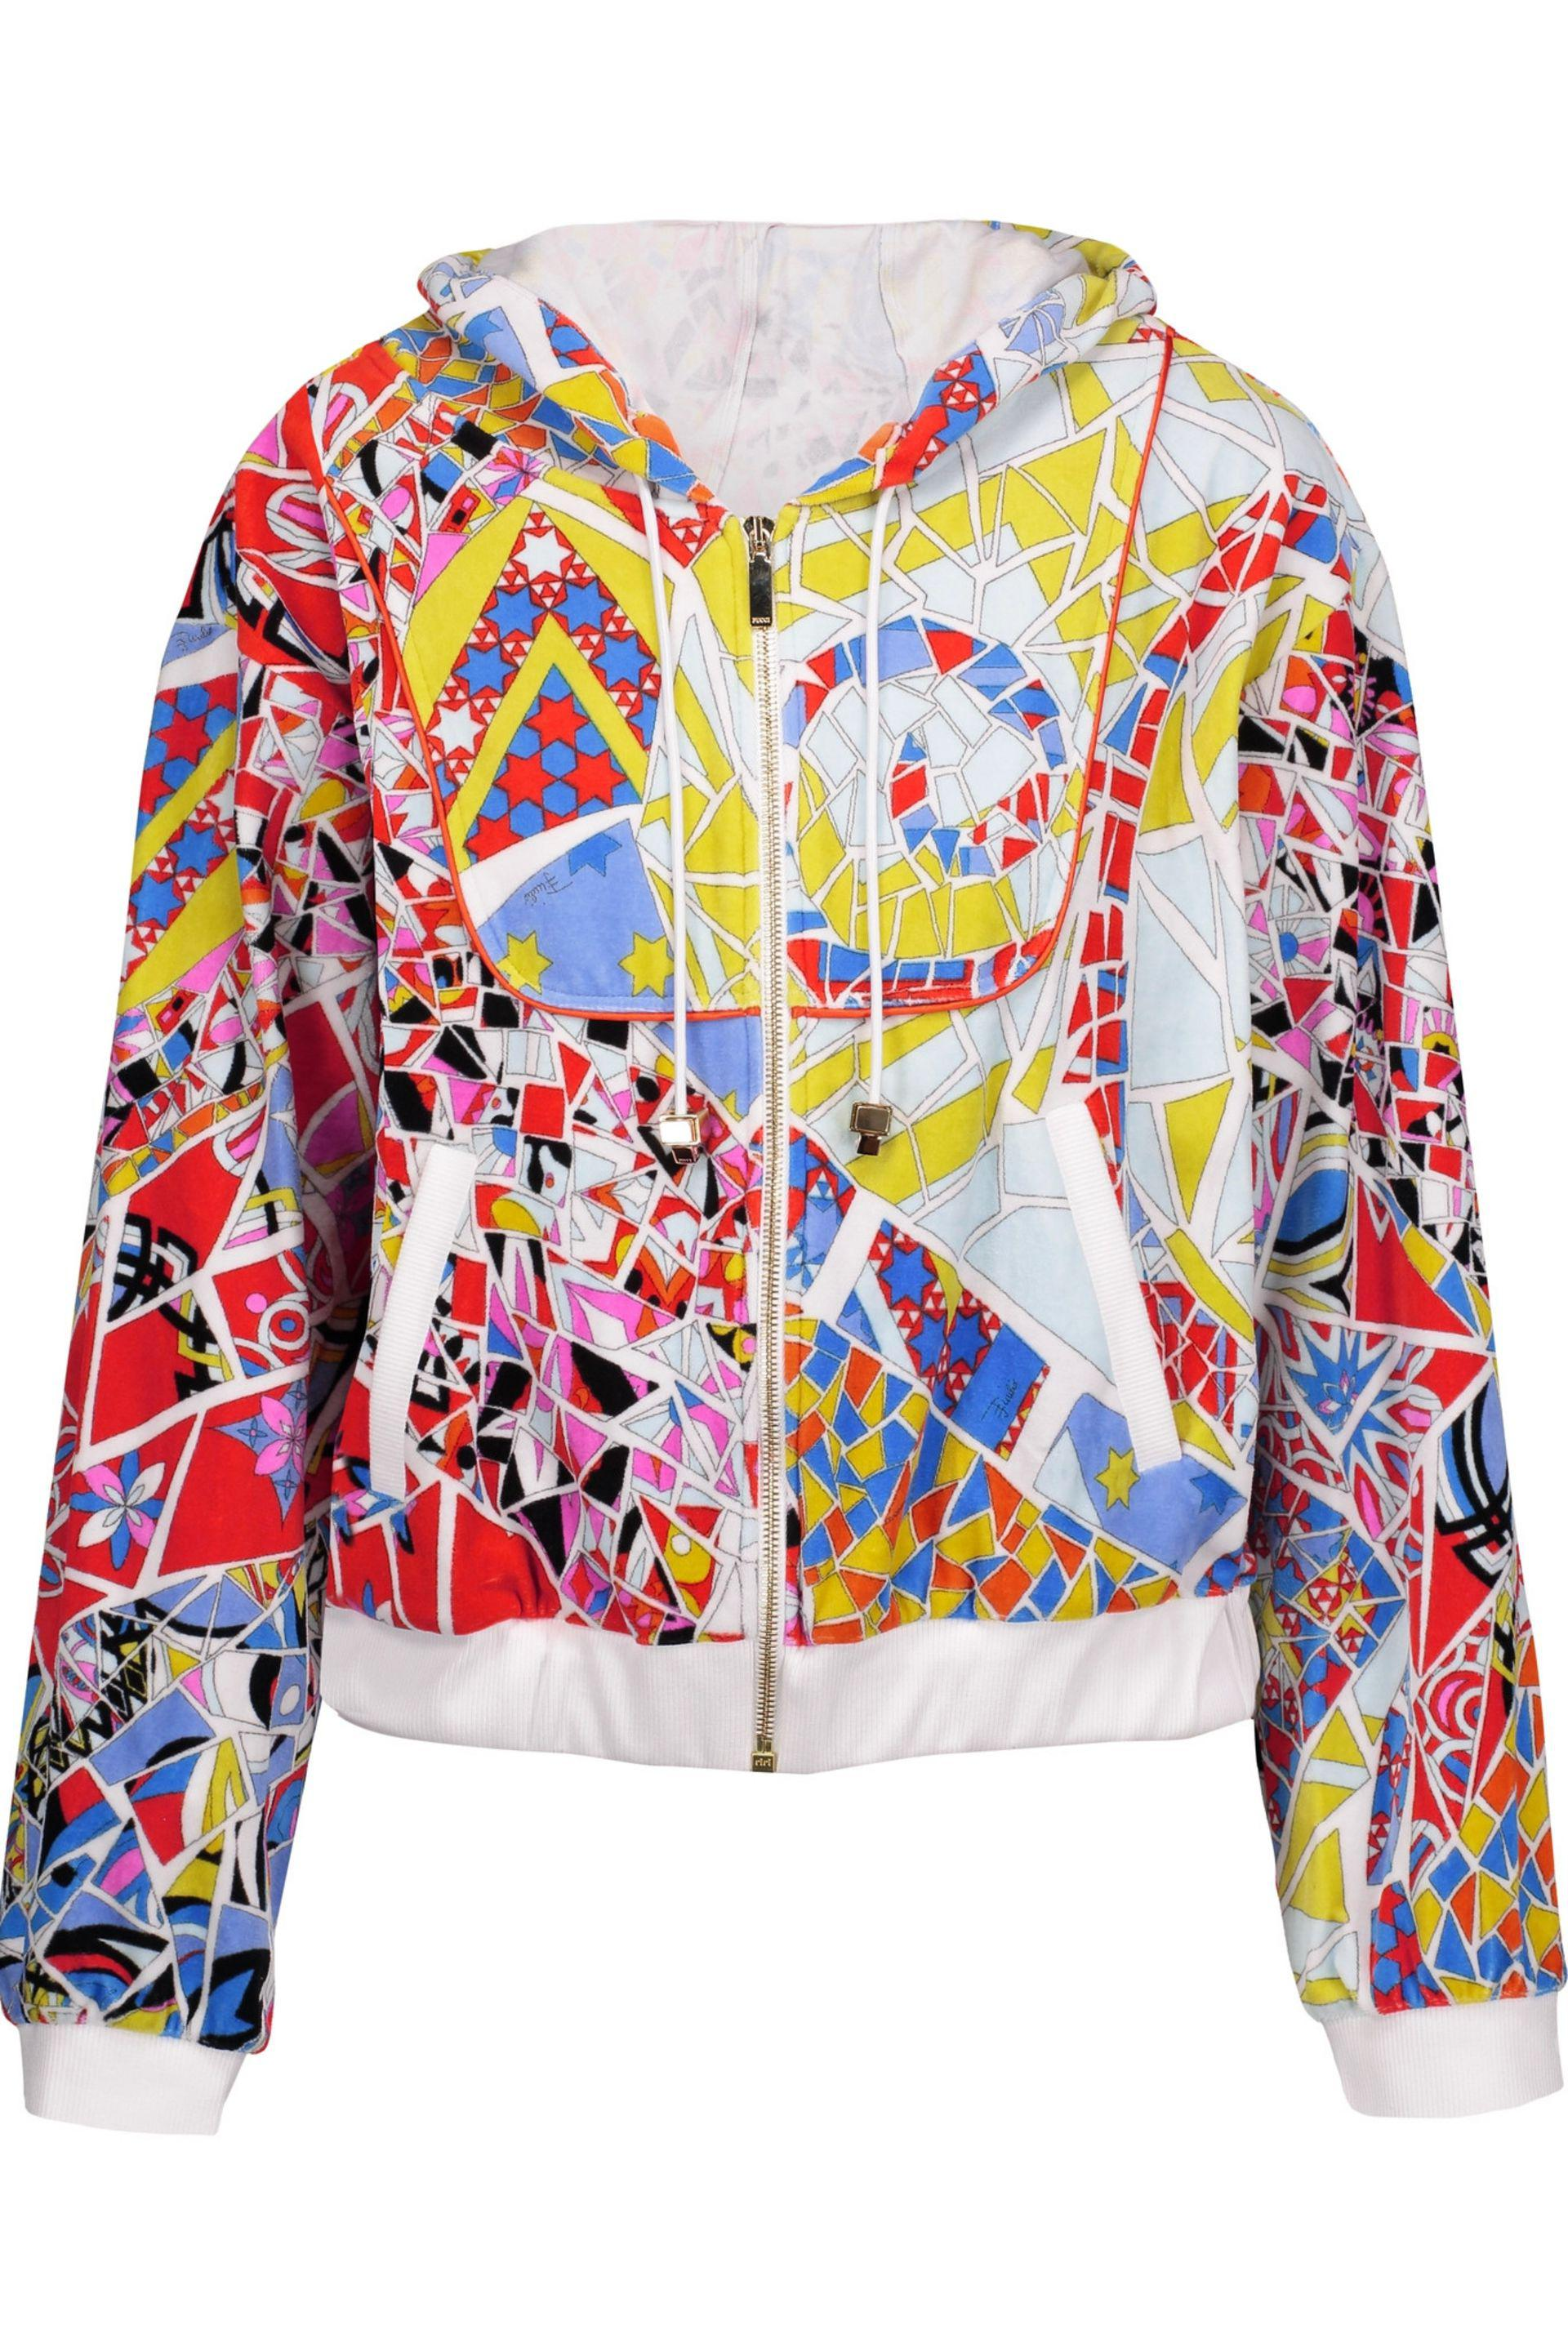 Printed cotton sweatshirt Emilio Pucci Discount Popular Cheap Price Fake Sale Official For Sale Wholesale Price Pay With Visa 1cdBrkWVs